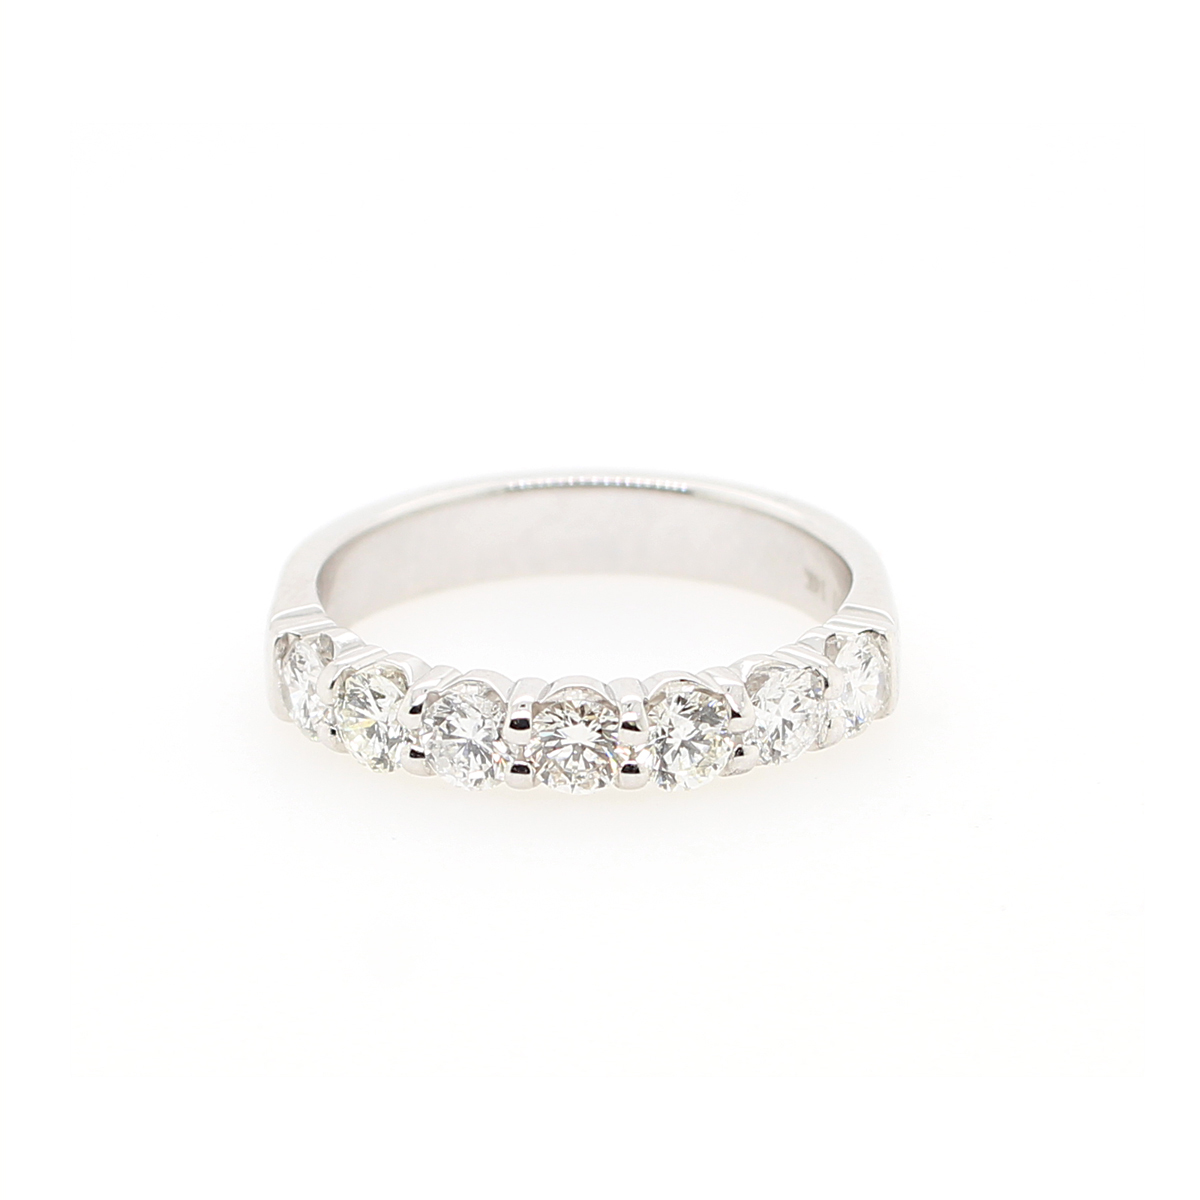 Shefi Diamonds 14 Karat White Gold Diamond Band